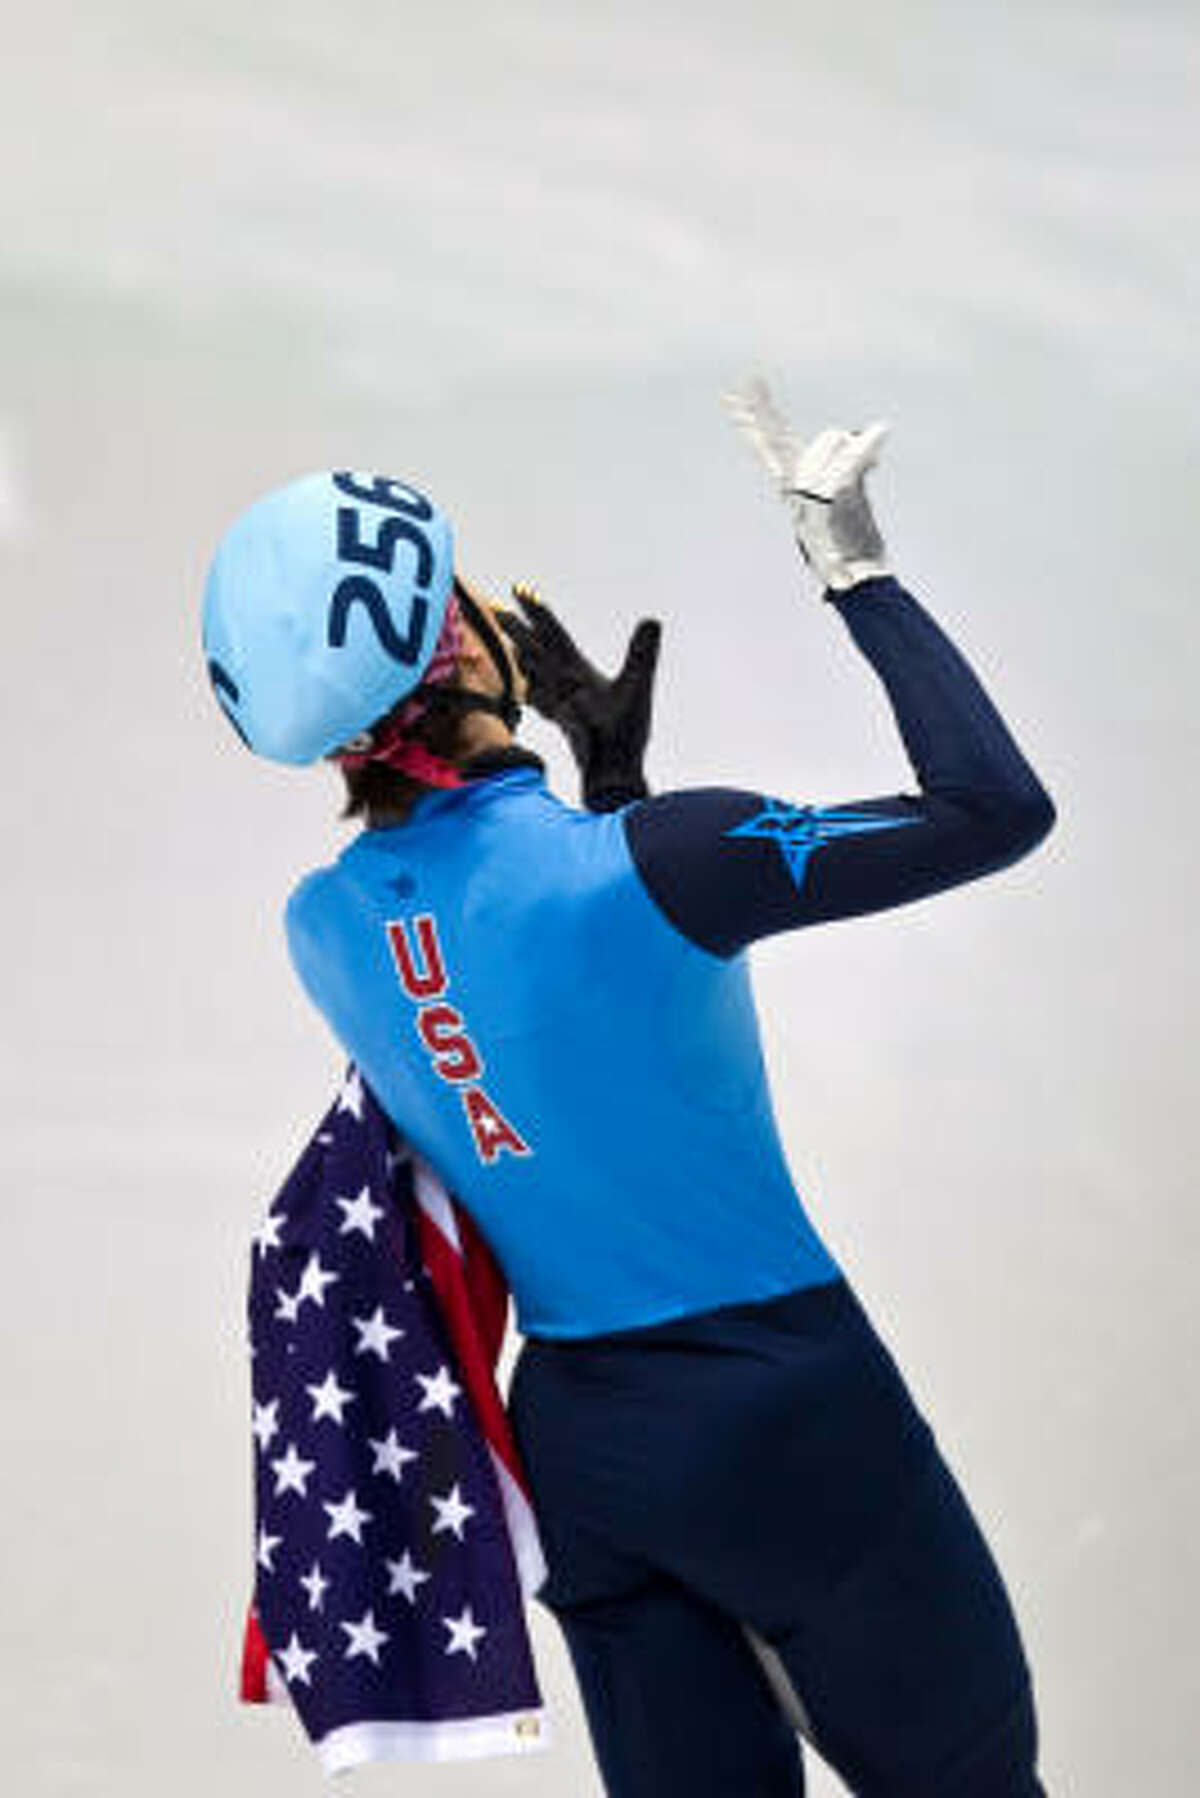 Apolo Anton Ohno holds up seven fingers to the crowd to signify his overall medal count.